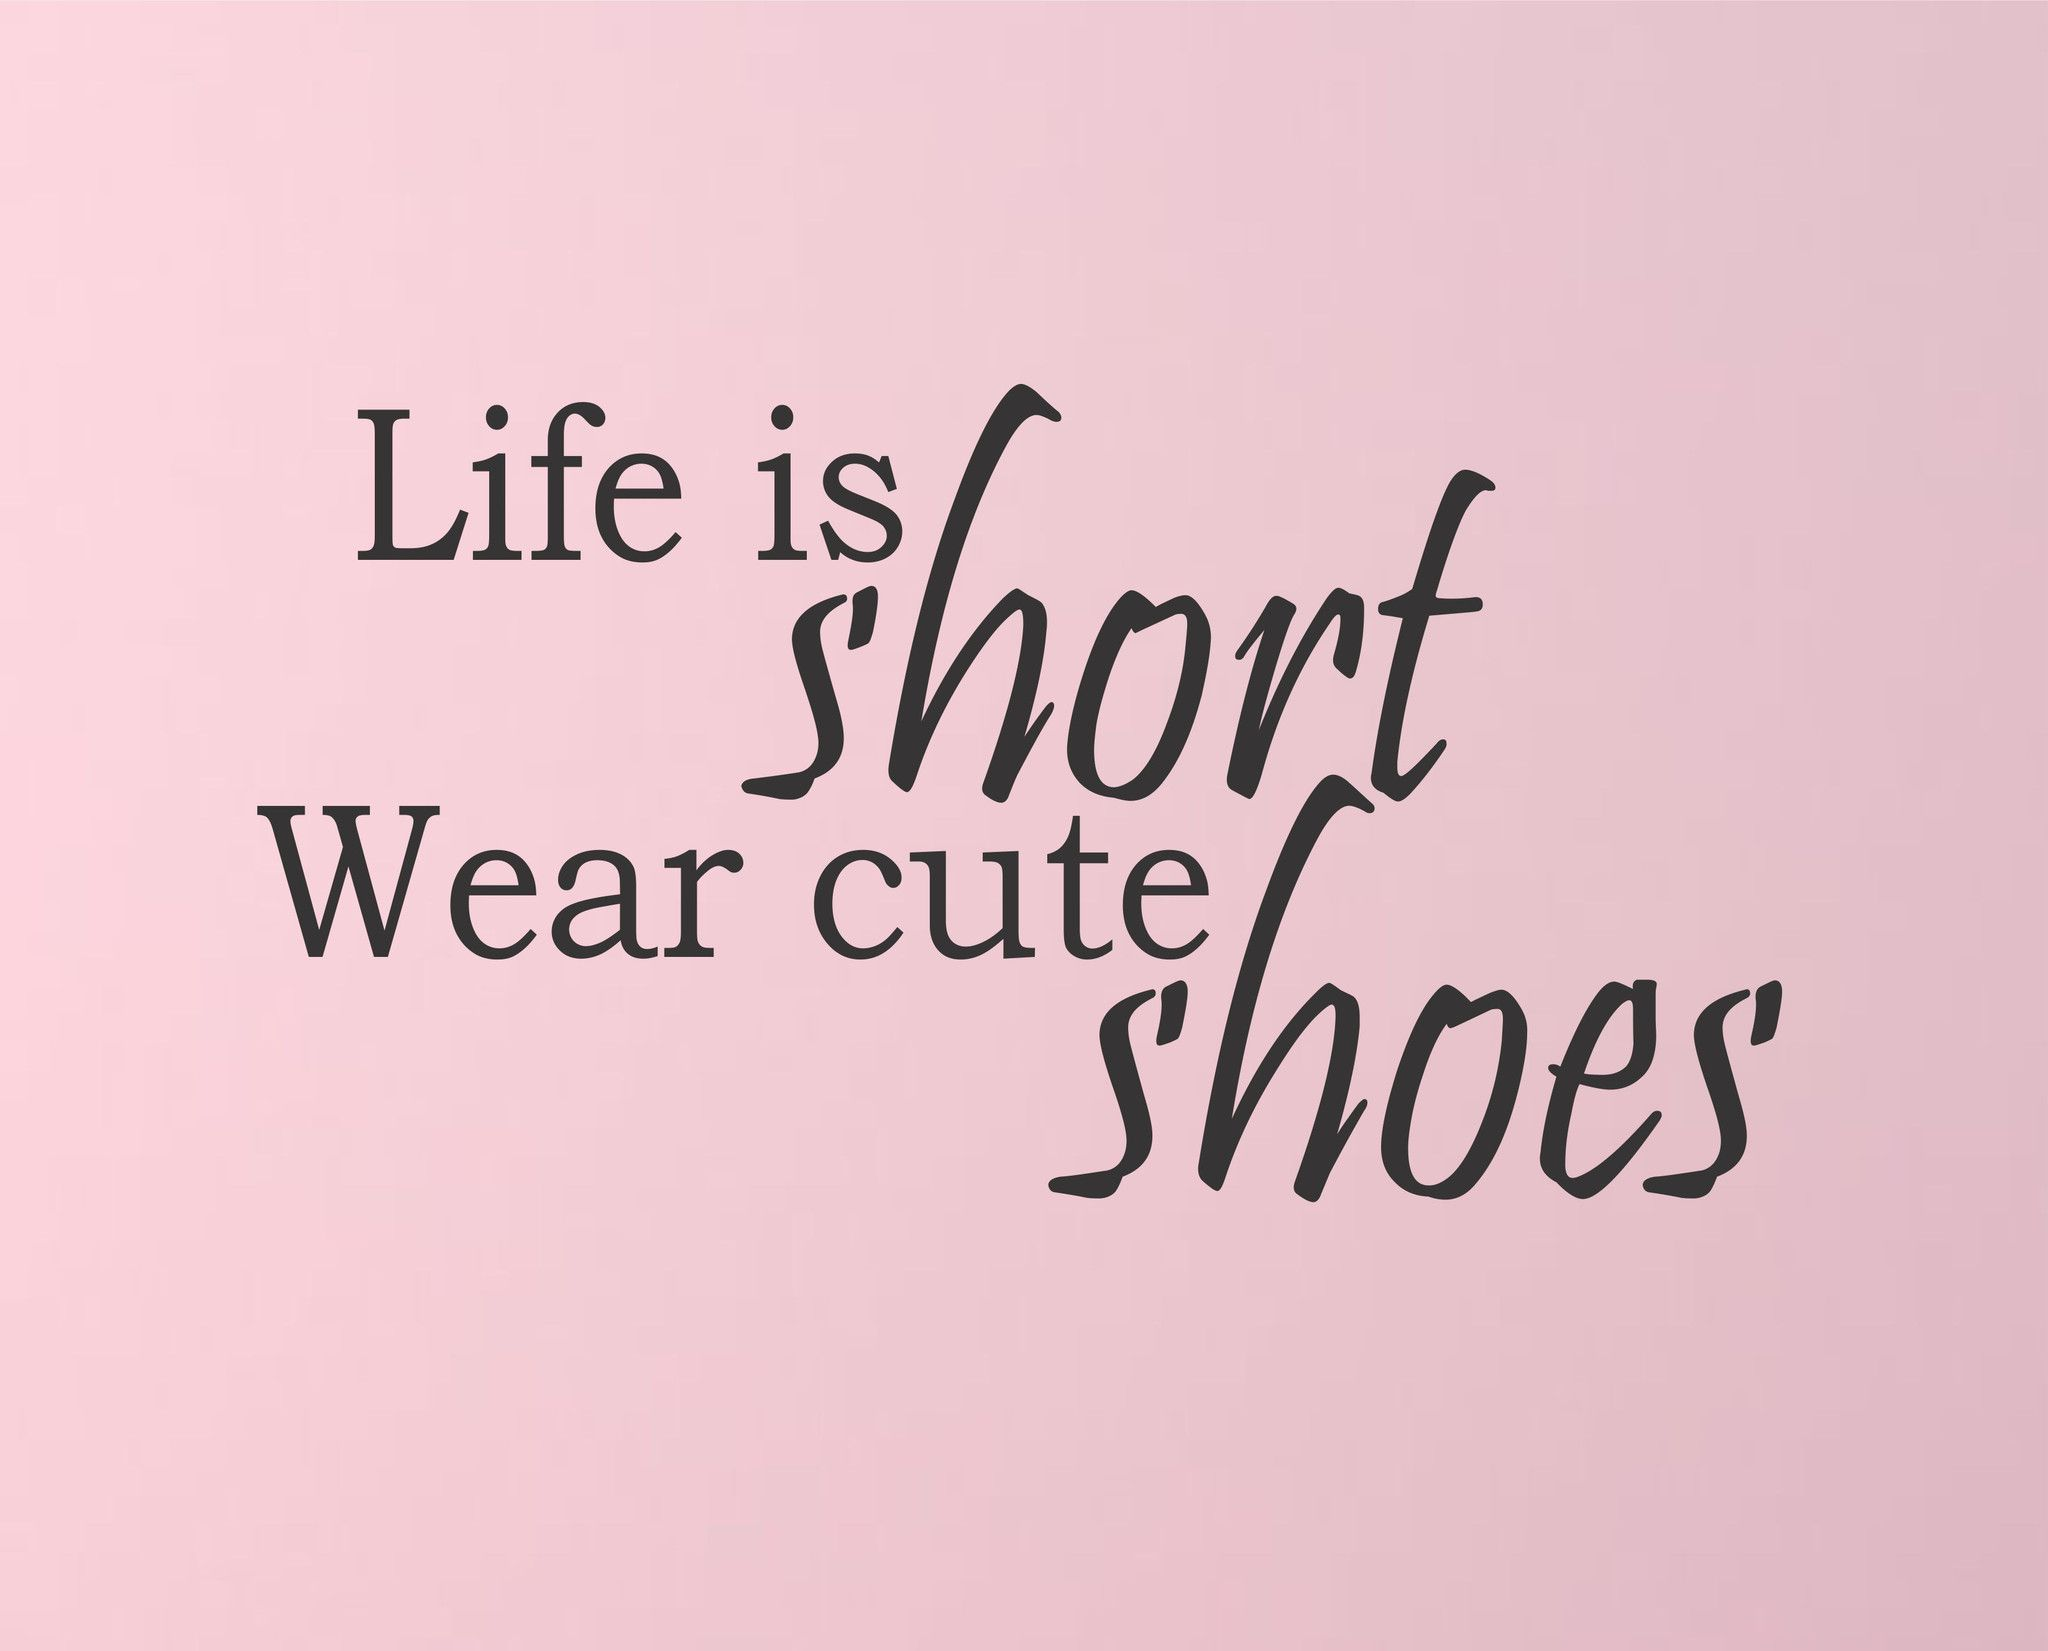 Cute Quotes: Life Is Short Wear Cute Shoes Wall Decal